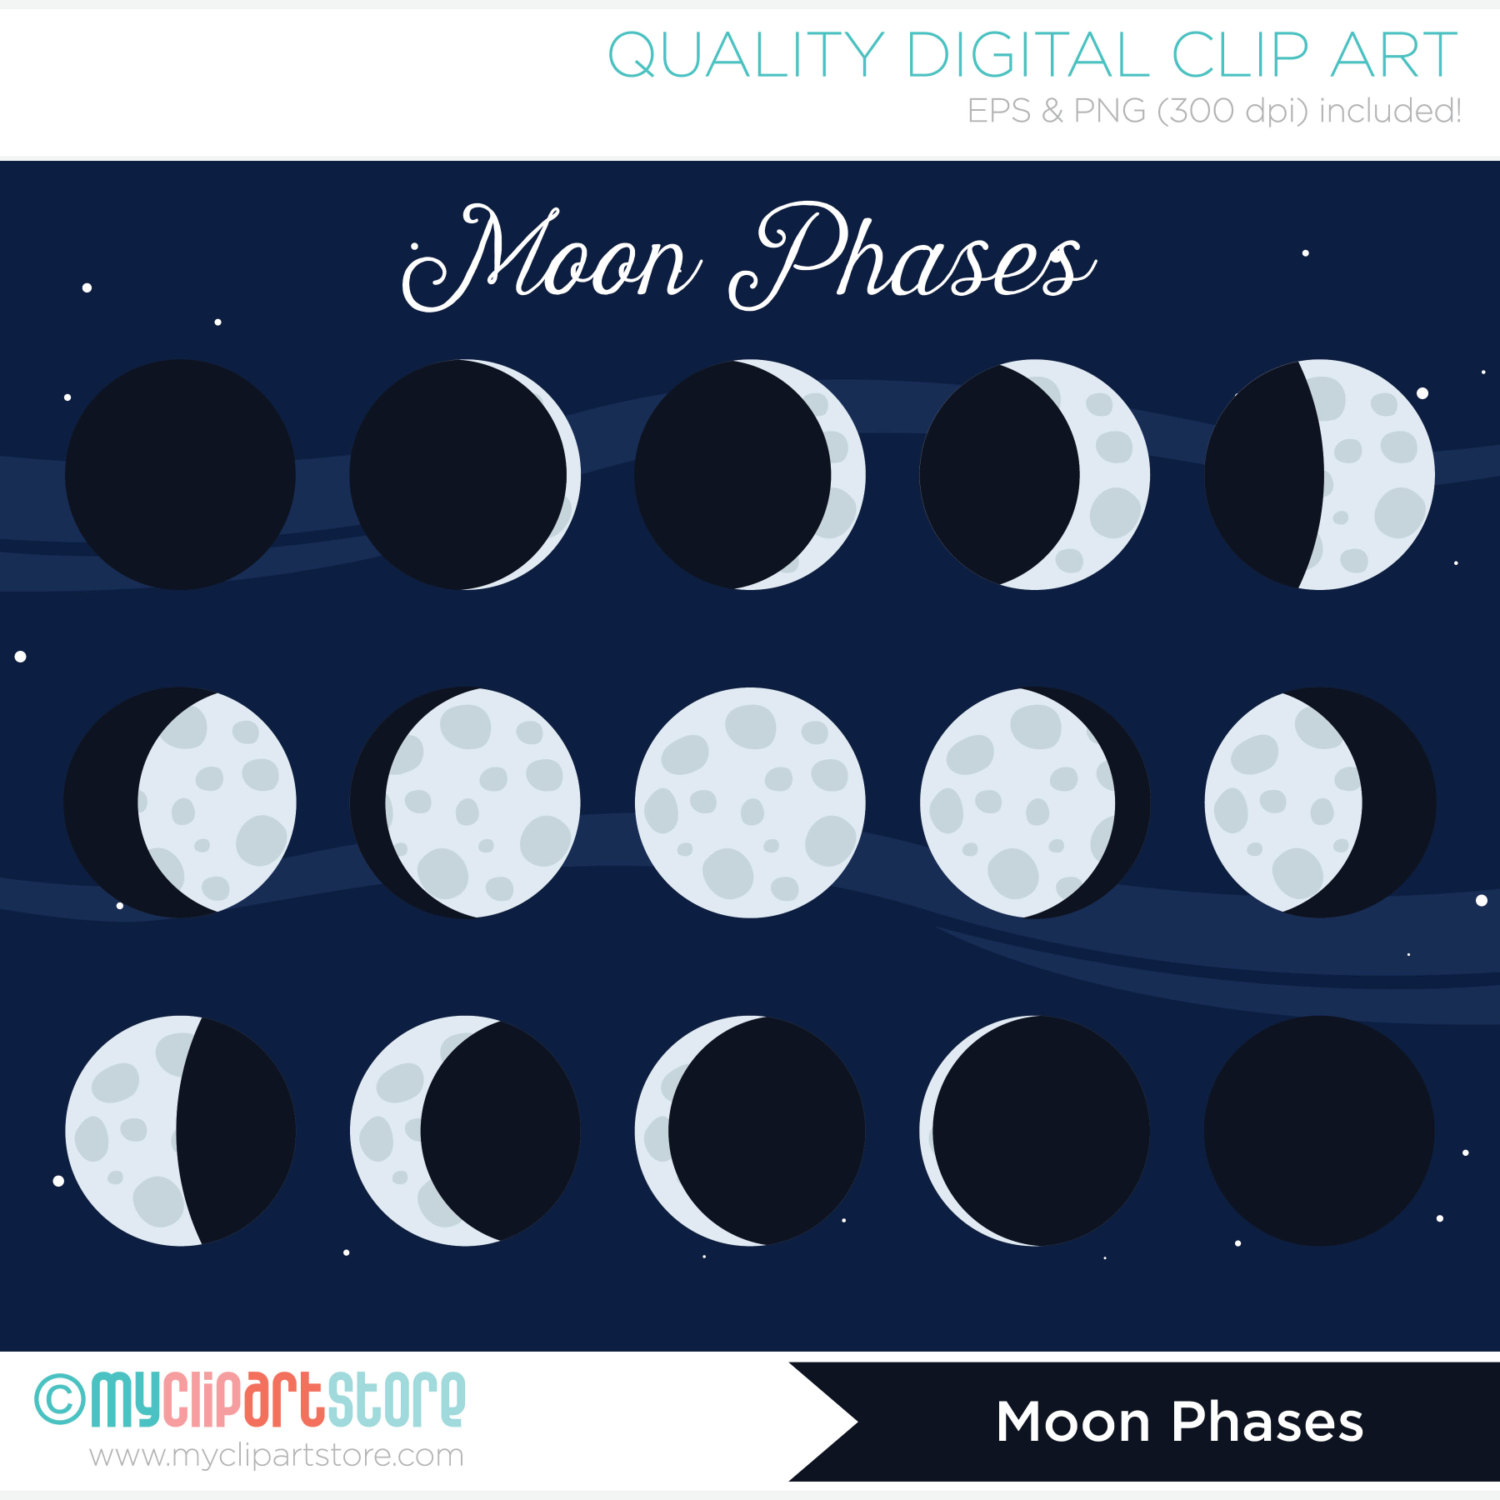 Lunar clipart kawaii Phases Cycles Outer a